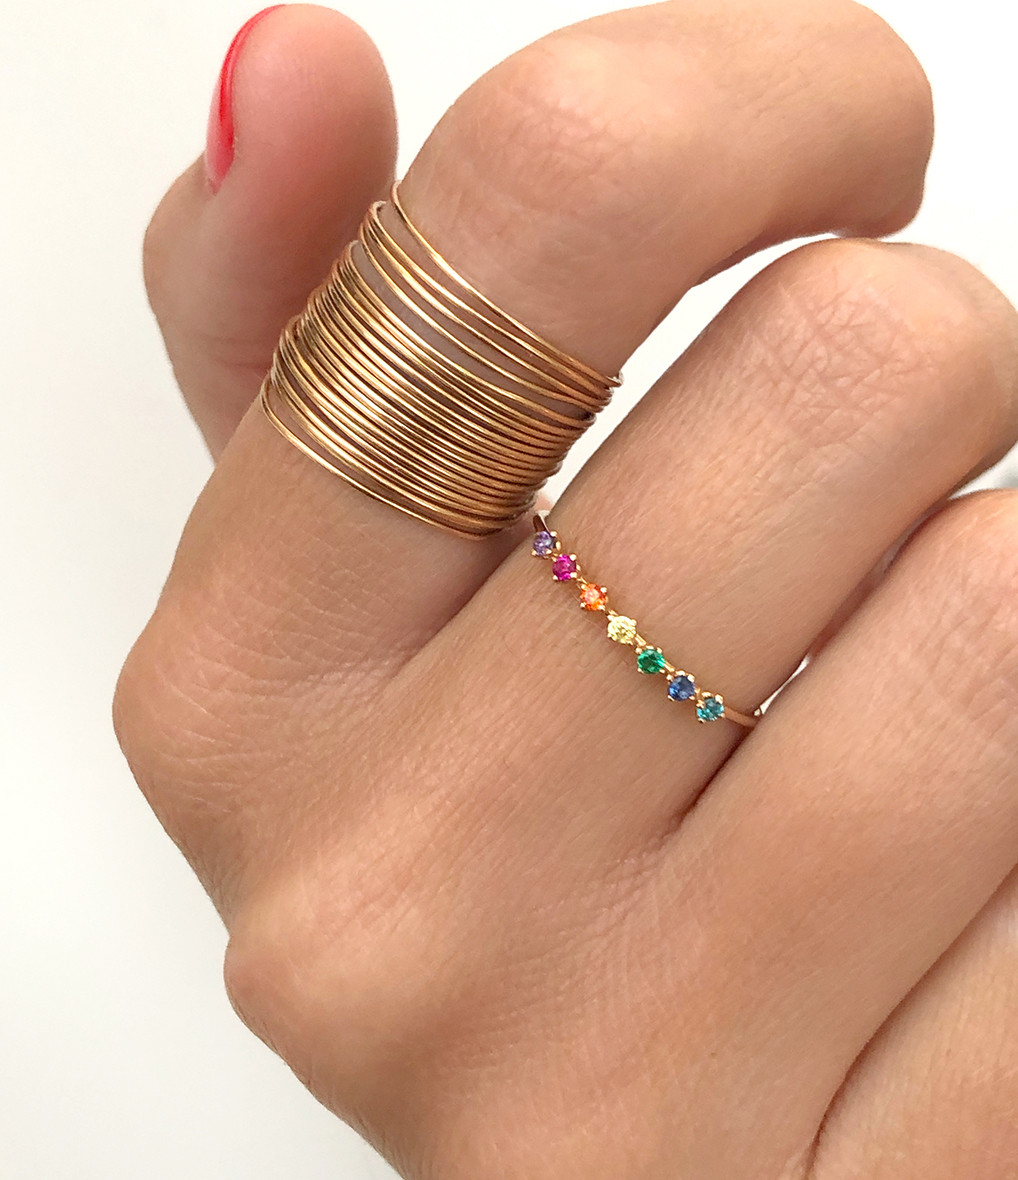 VANRYCKE - Bague Stardust Rainbow Or Rose Pierres Multicolores